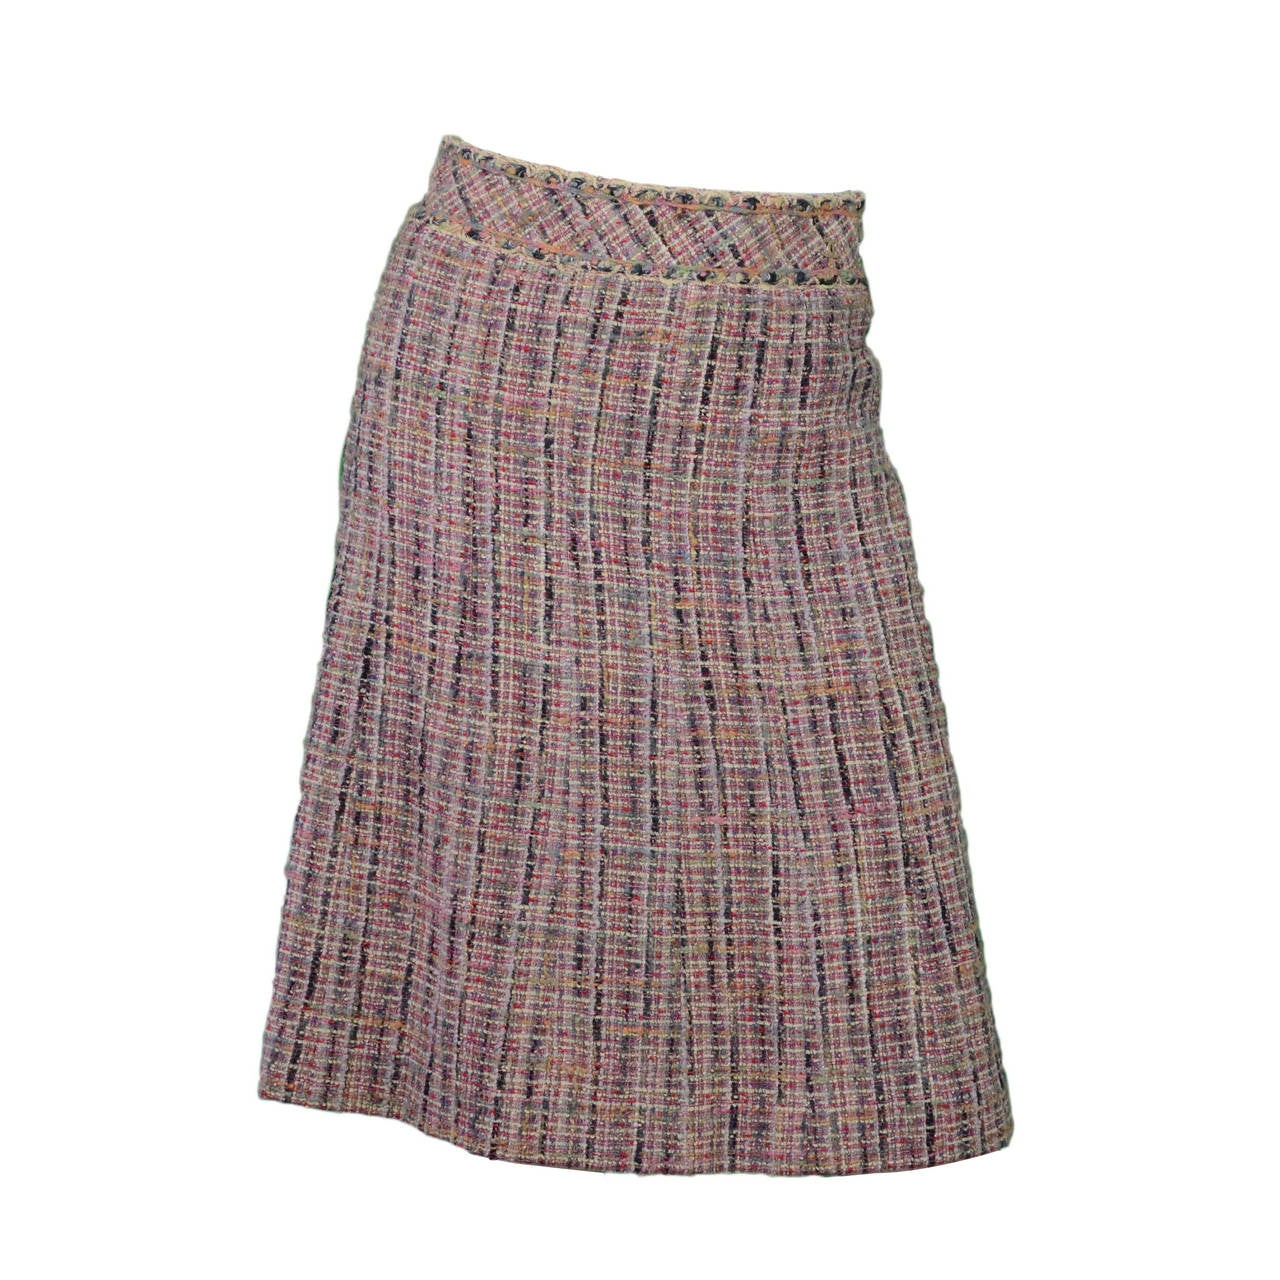 CHANEL Multi-Colored Tweed A-Line Skirt sz 34 1